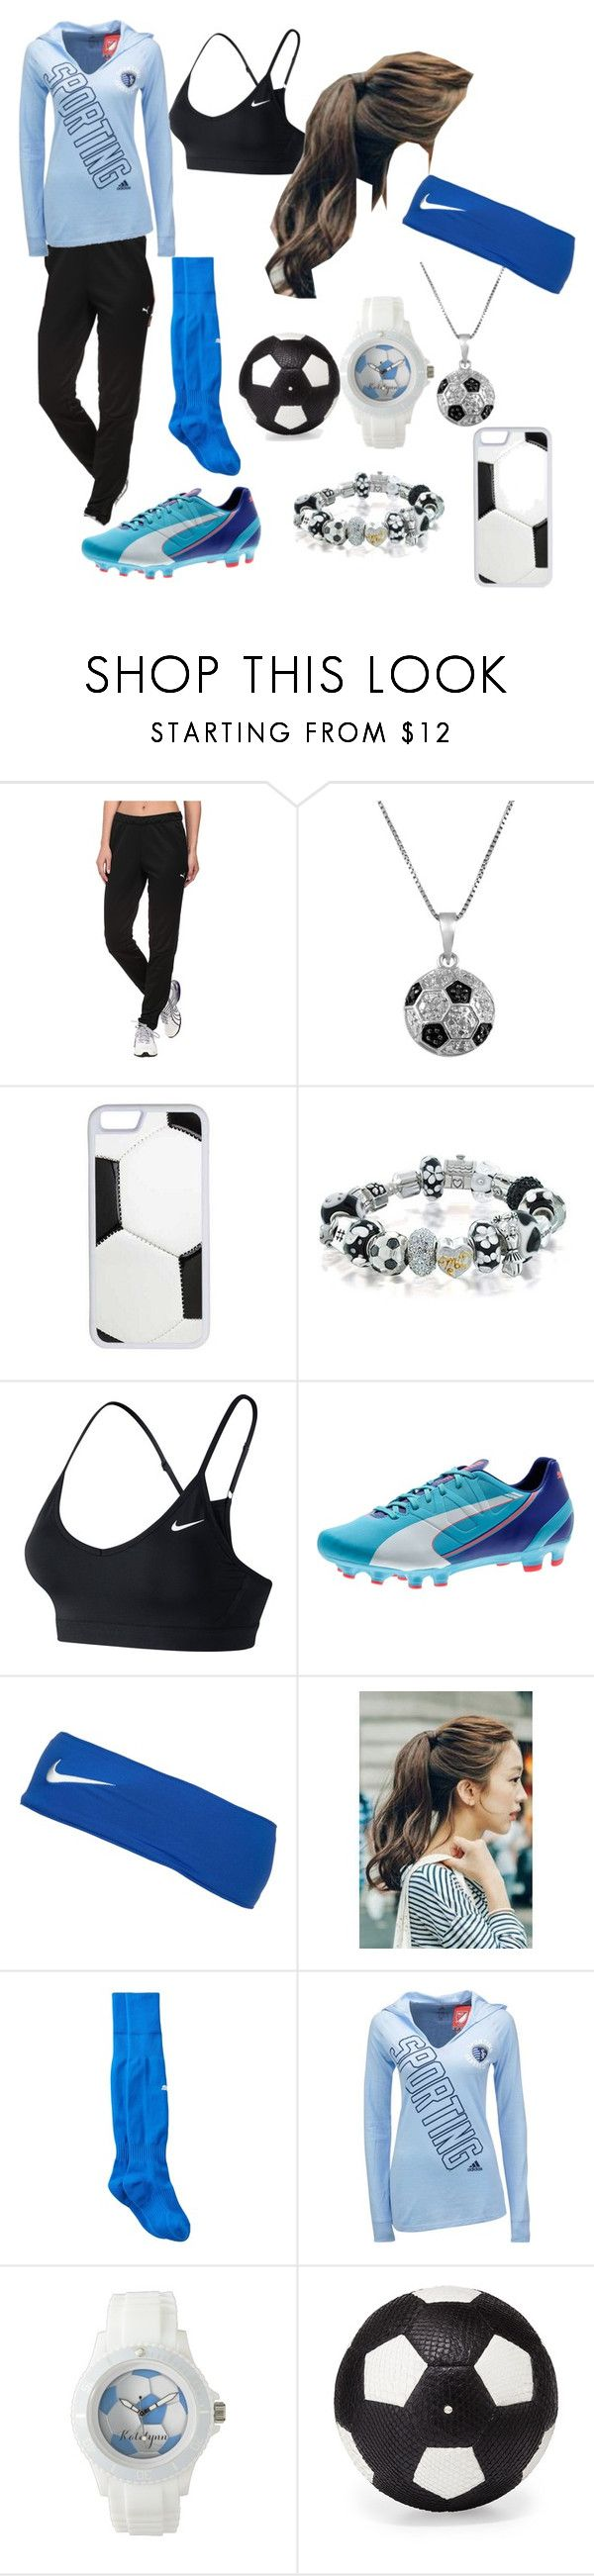 """""""Soccer girl"""" by lovebeingwacky ❤ liked on Polyvore featuring Puma, Jewel Exclusive, CellPowerCases, Bling Jewelry, NIKE, Marlangrouge, adidas and Elisabeth Weinstock"""